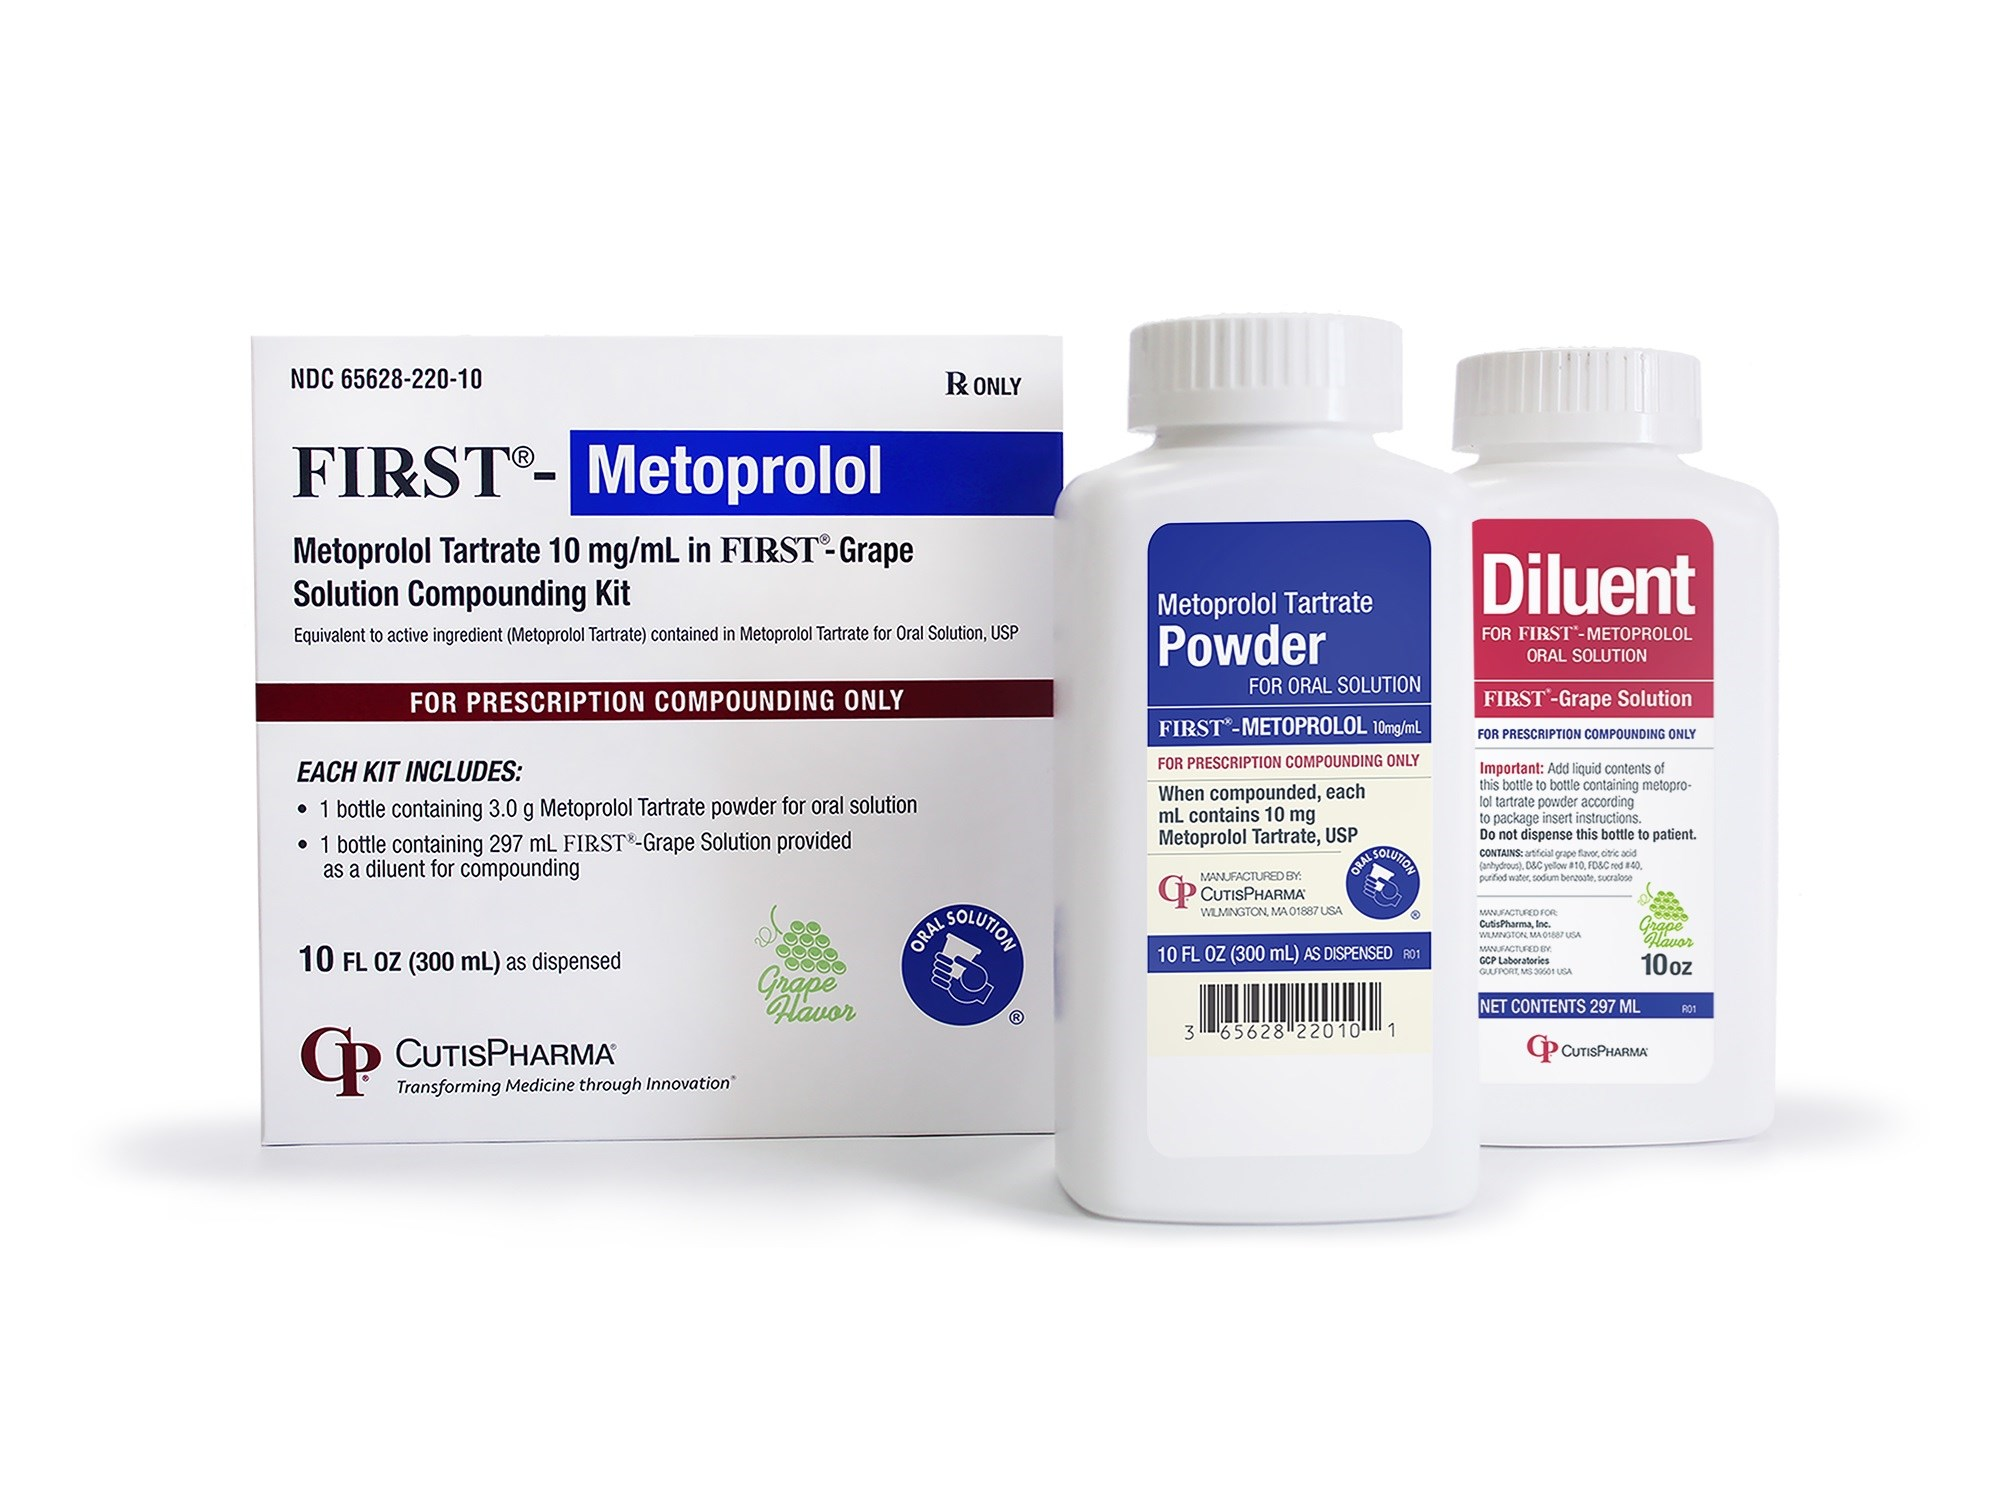 When compounded by the pharmacist, each mL contains 10mg of metoprolol tartrate.